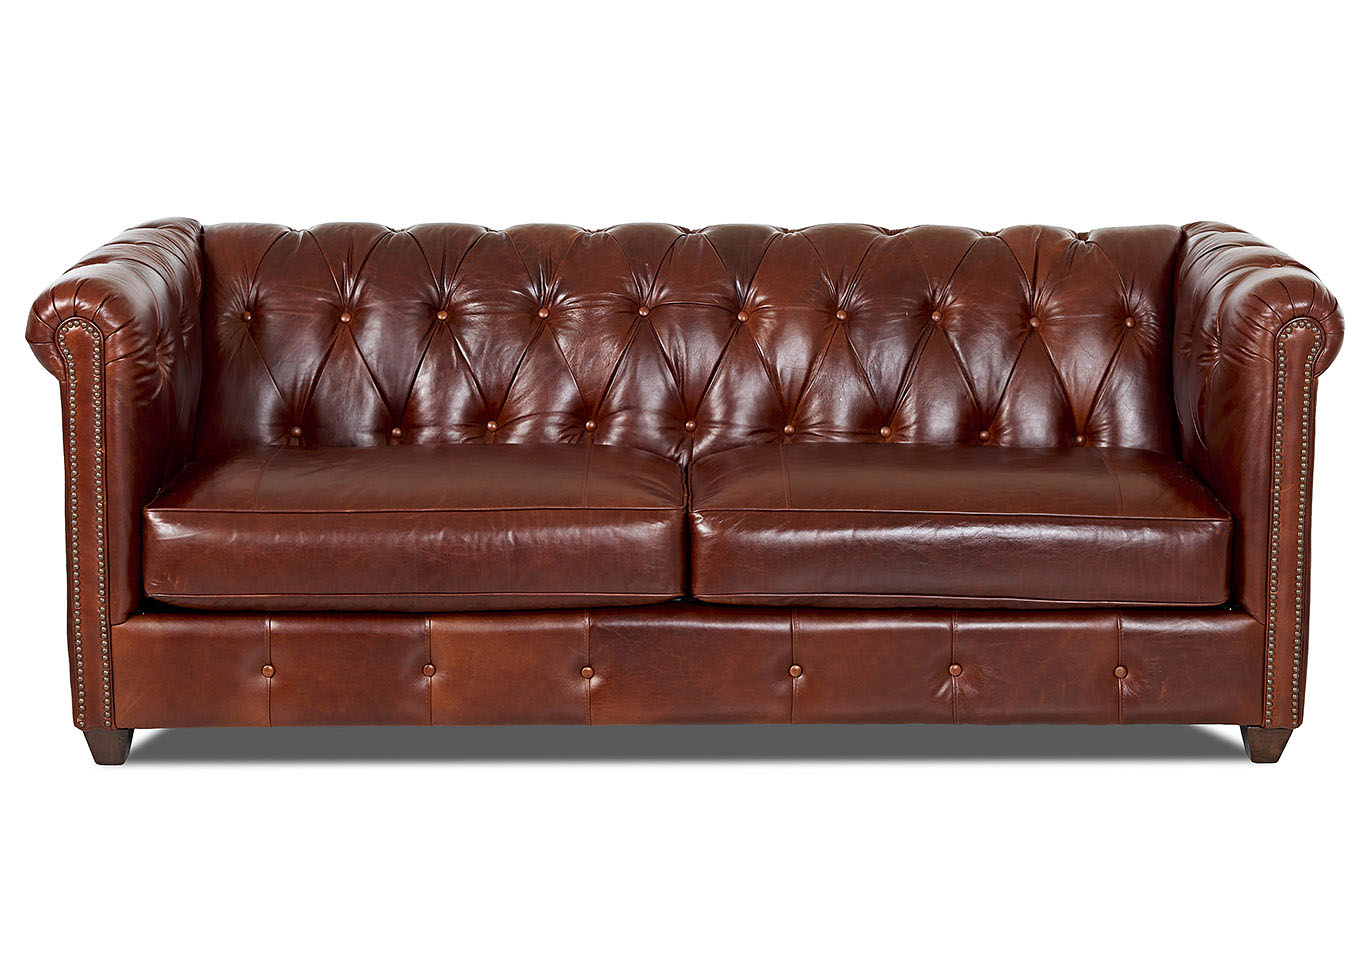 Beech Mountain Africa Notte Leather Stationary Sofa,Klaussner Home Furnishings